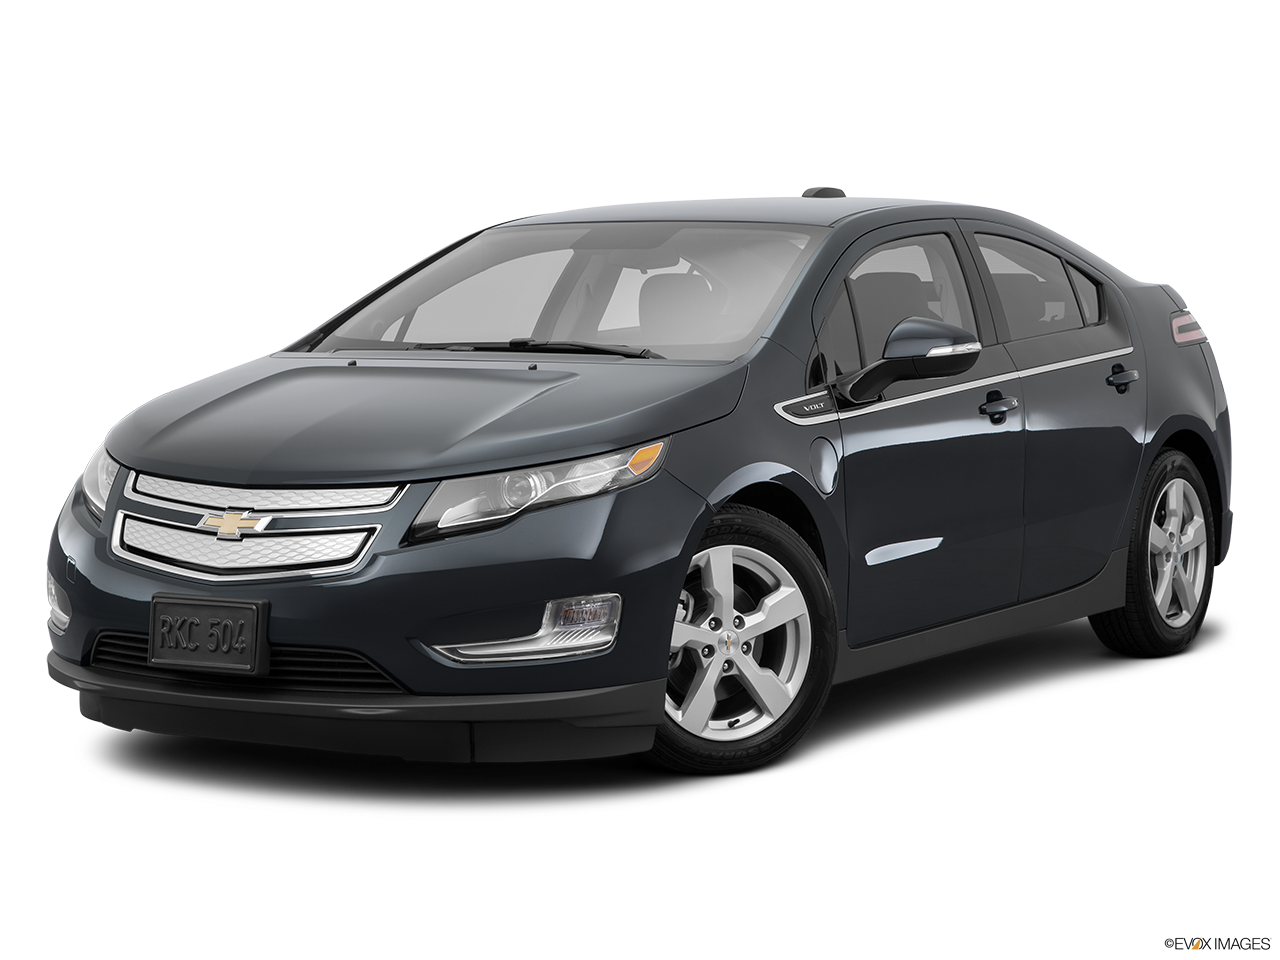 Test Drive A 2015 Chevrolet Volt at Andean Chevrolet in Atlanta